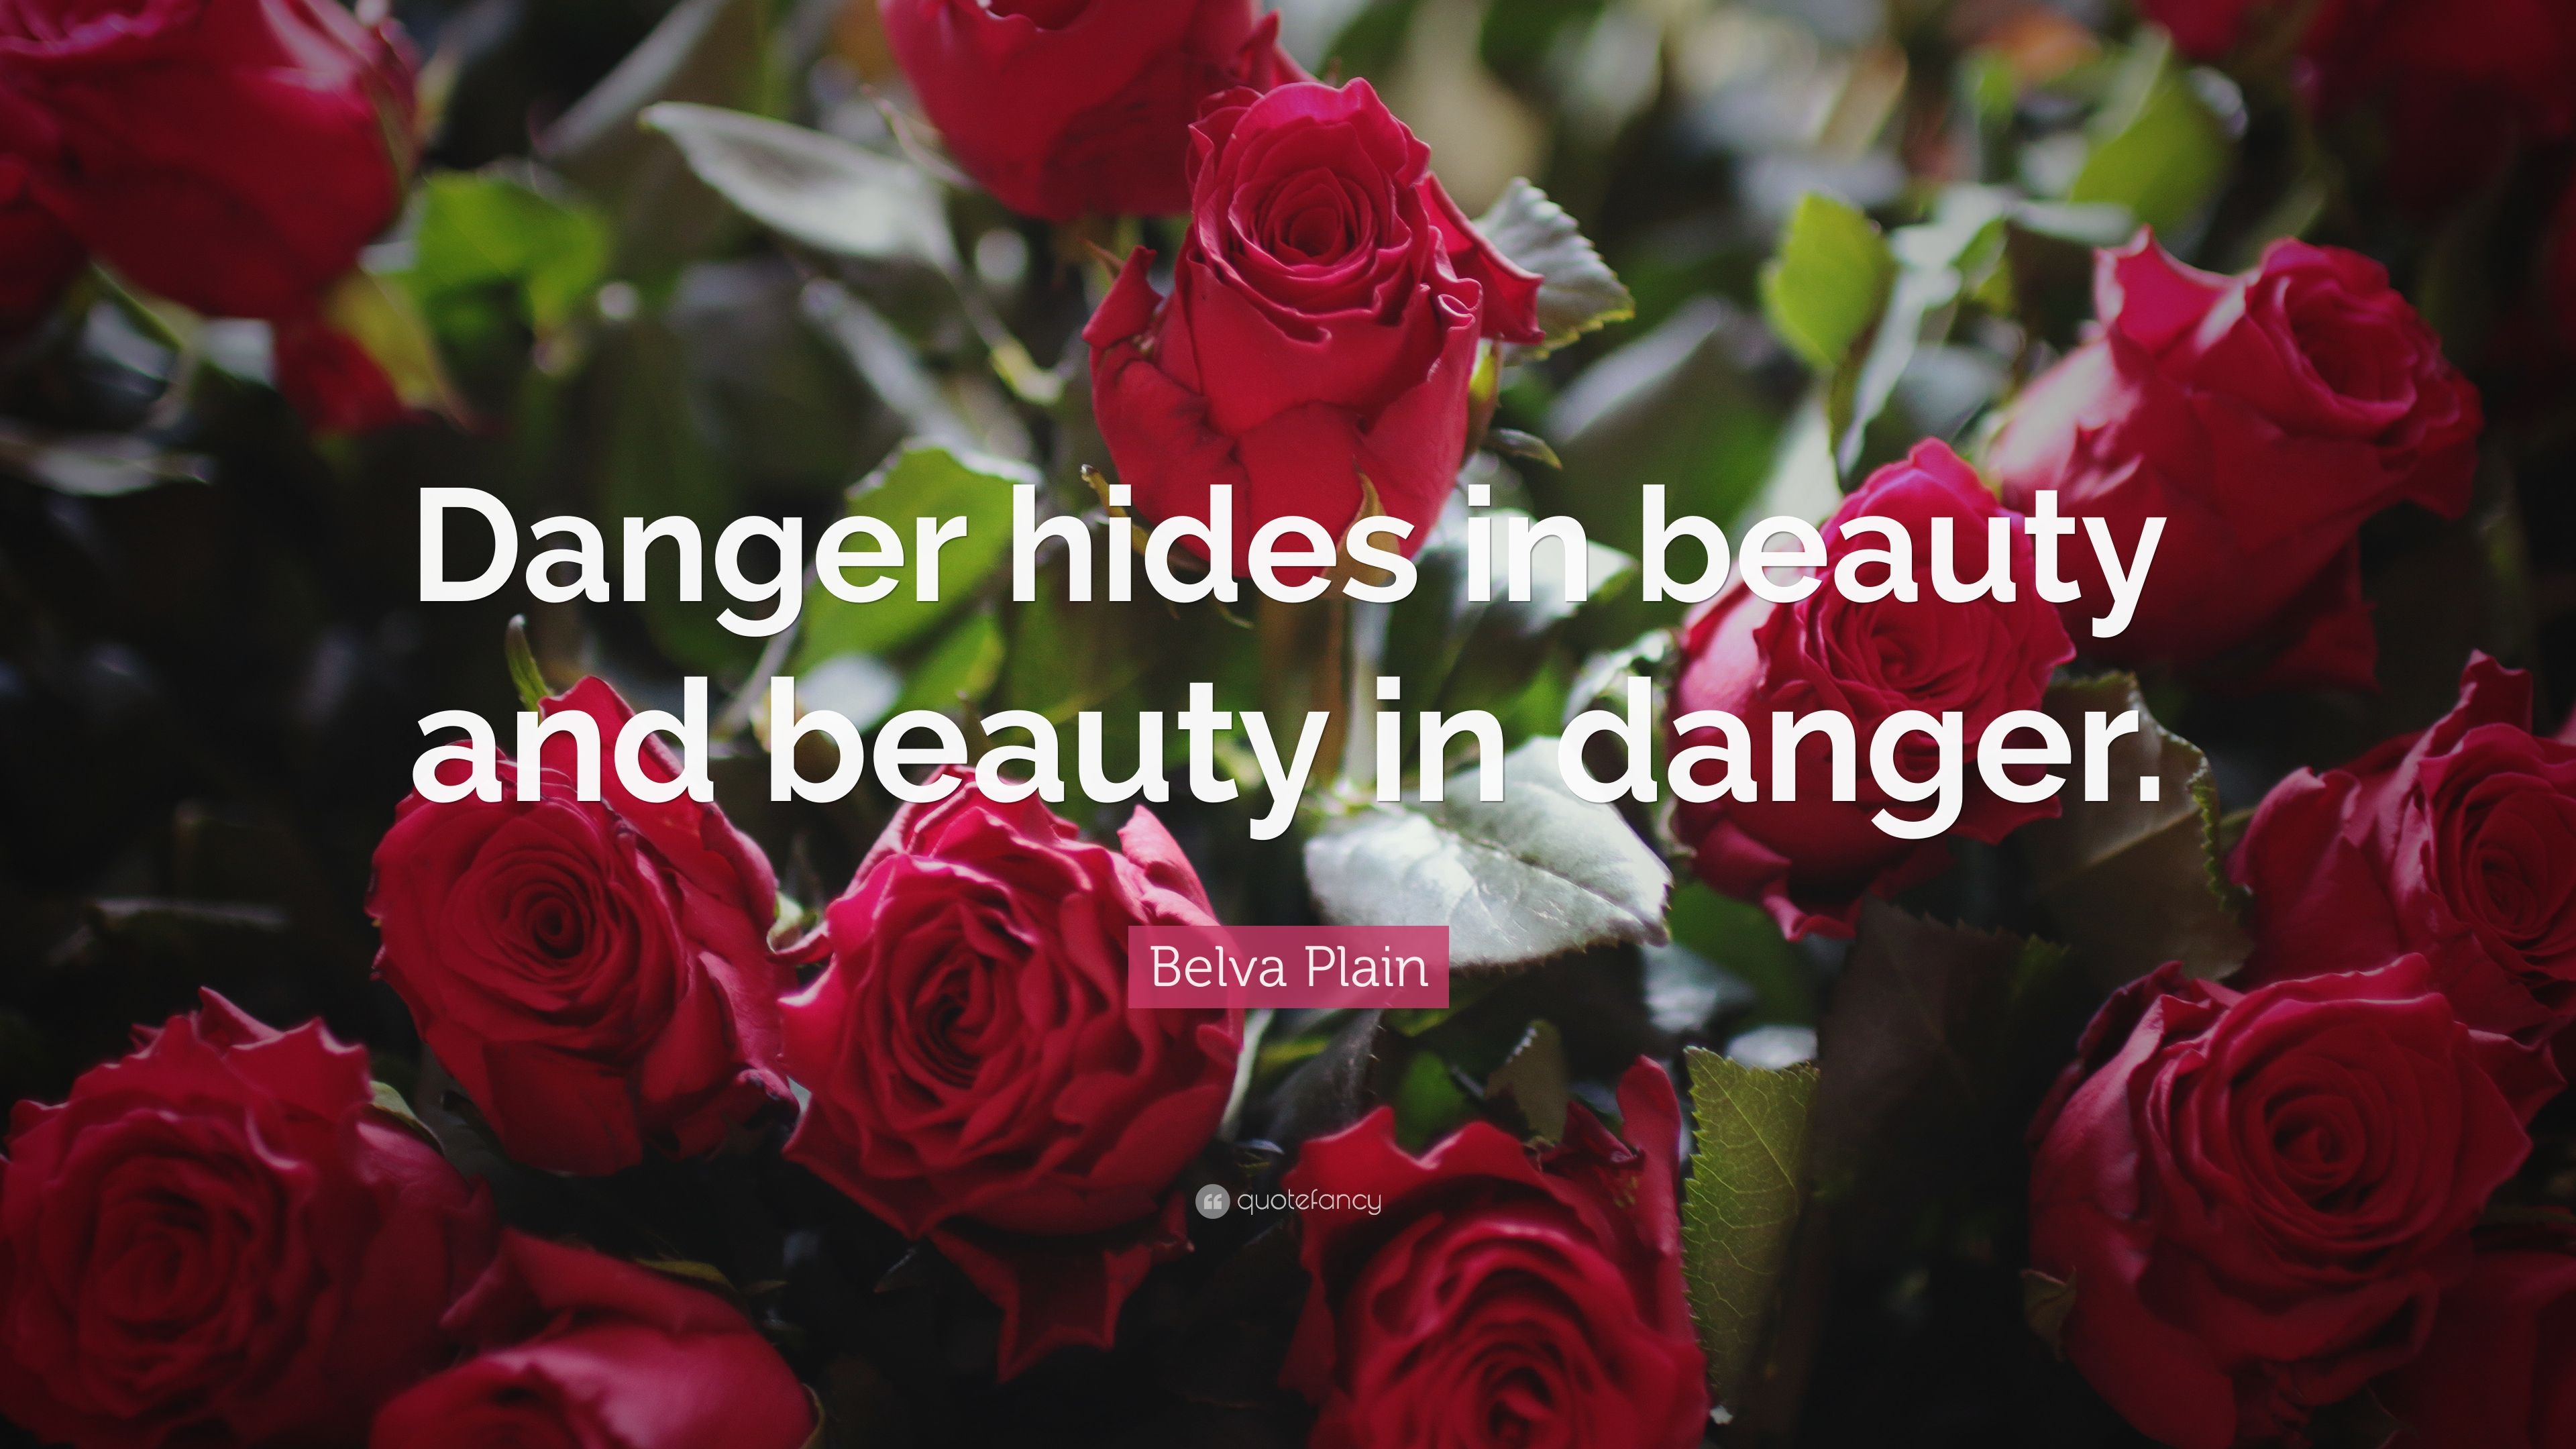 Flower And Beauty Quotes Choice Image Flowers Bouquet Decoration Beautiful About Gallery Images